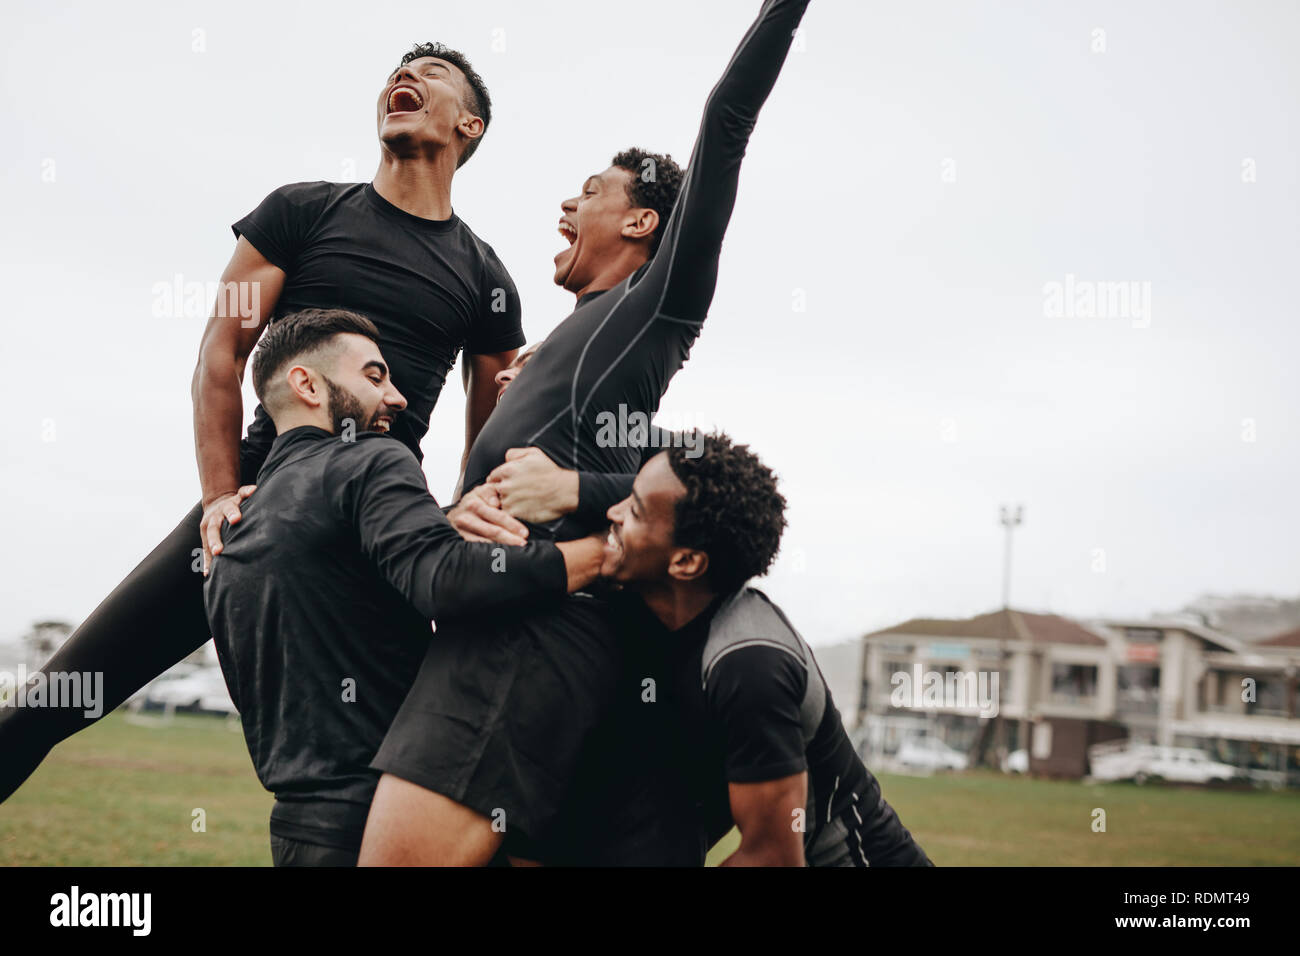 Excited soccer players shouting in joy after scoring a goal. Teammates celebrating victory holding the goal scorer. - Stock Image